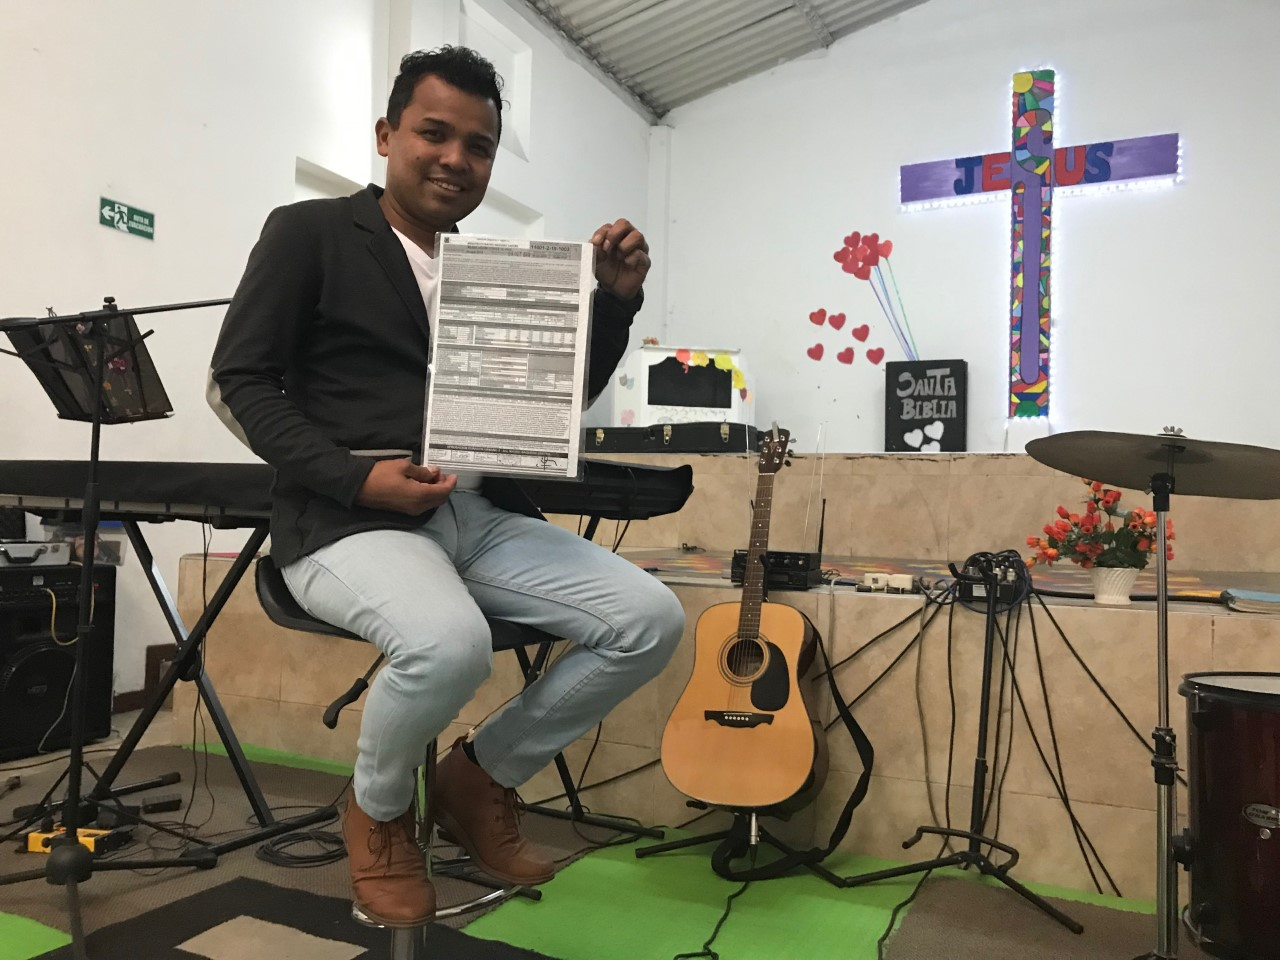 The Children's Church in Bogotá: At last, building permit secured